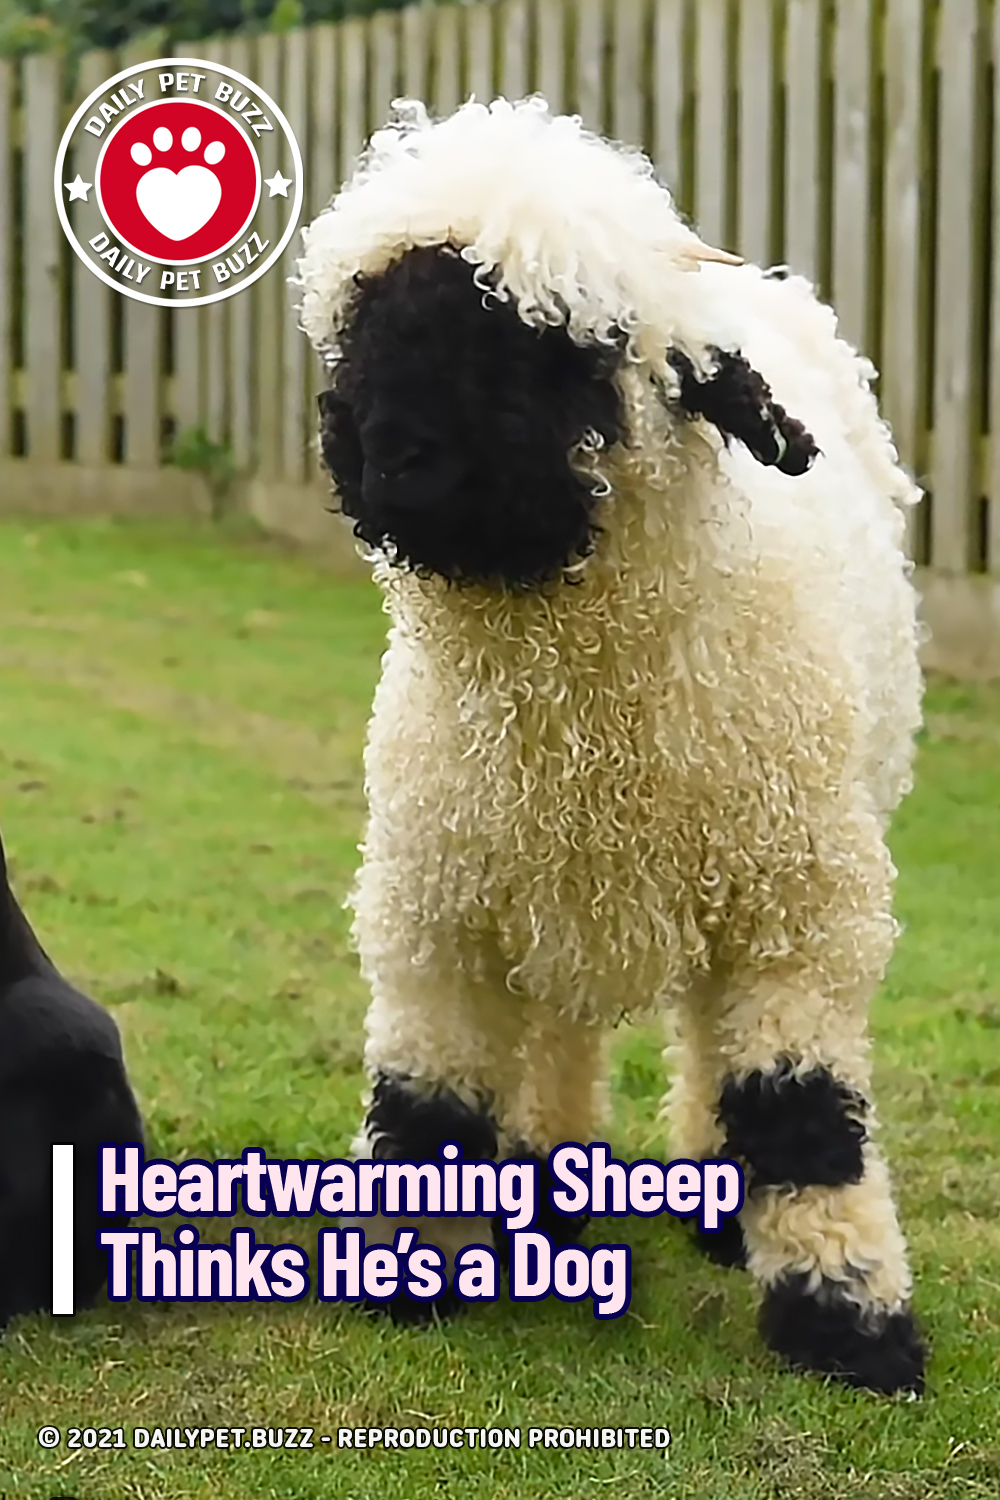 Heartwarming Sheep Thinks He's a Dog